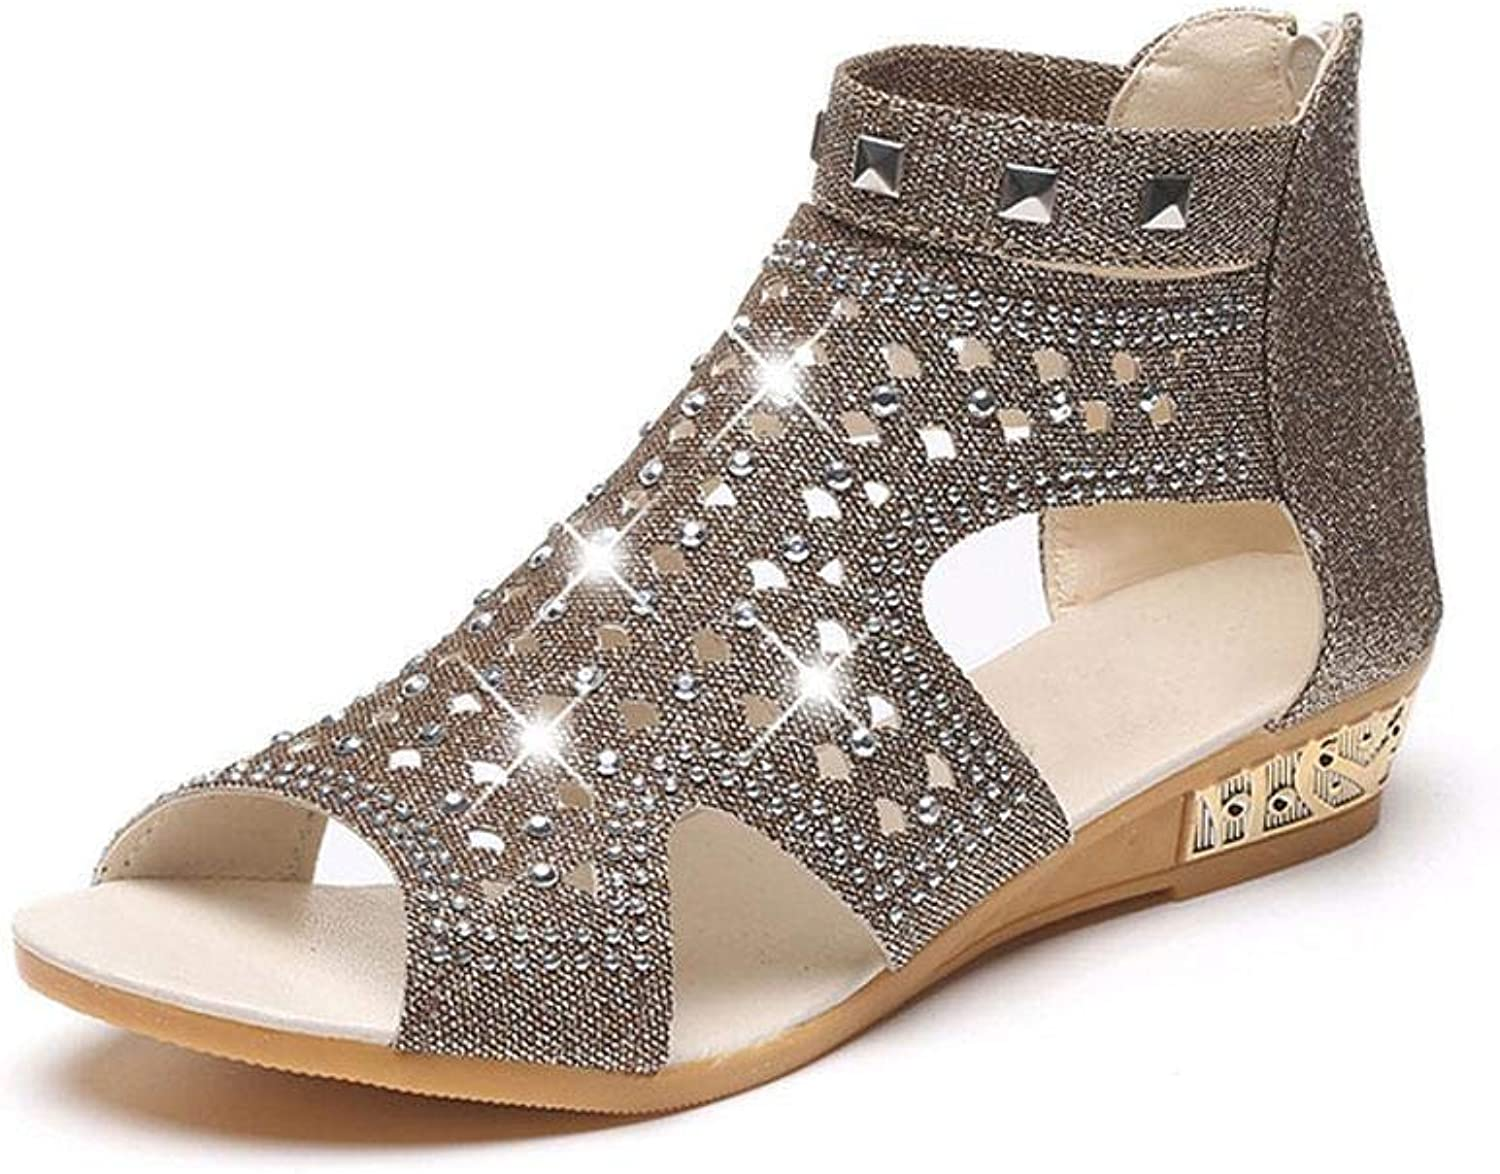 LEANO Women Fashion Rhinestone Rivet Flat Sandals Wedge Heel Summer shoes Sandals